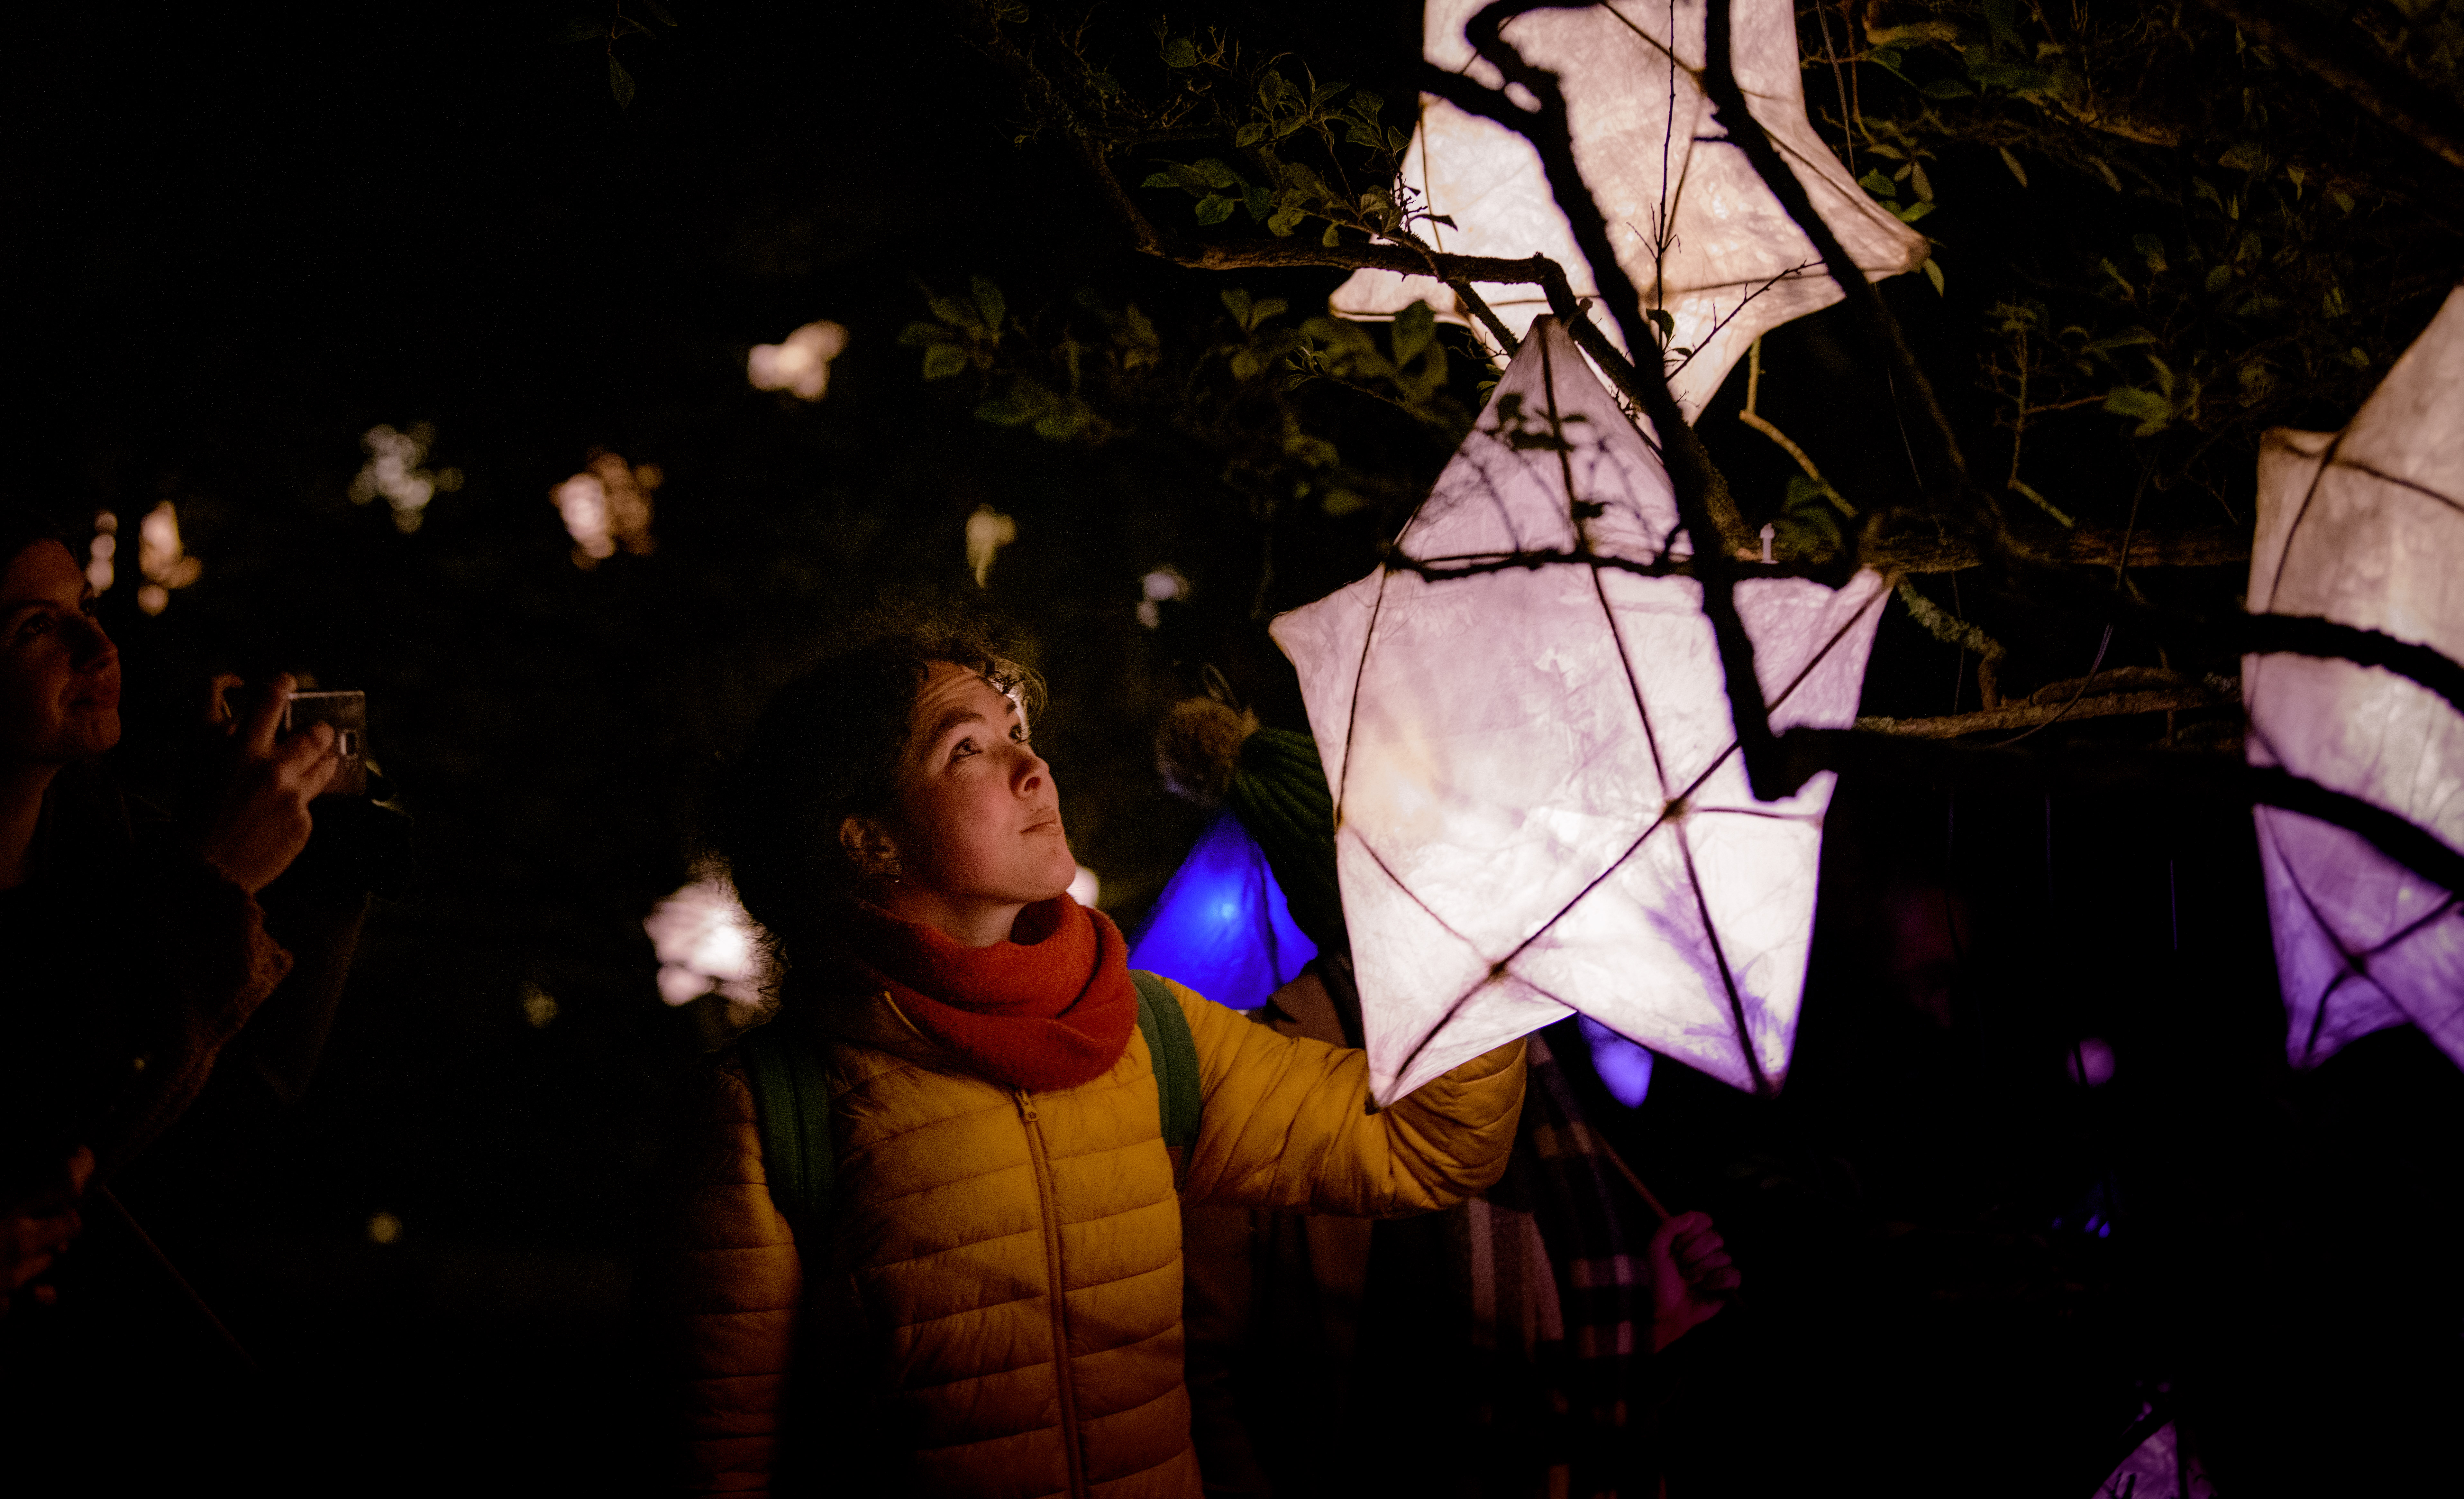 Star lanterns at Glow Wild